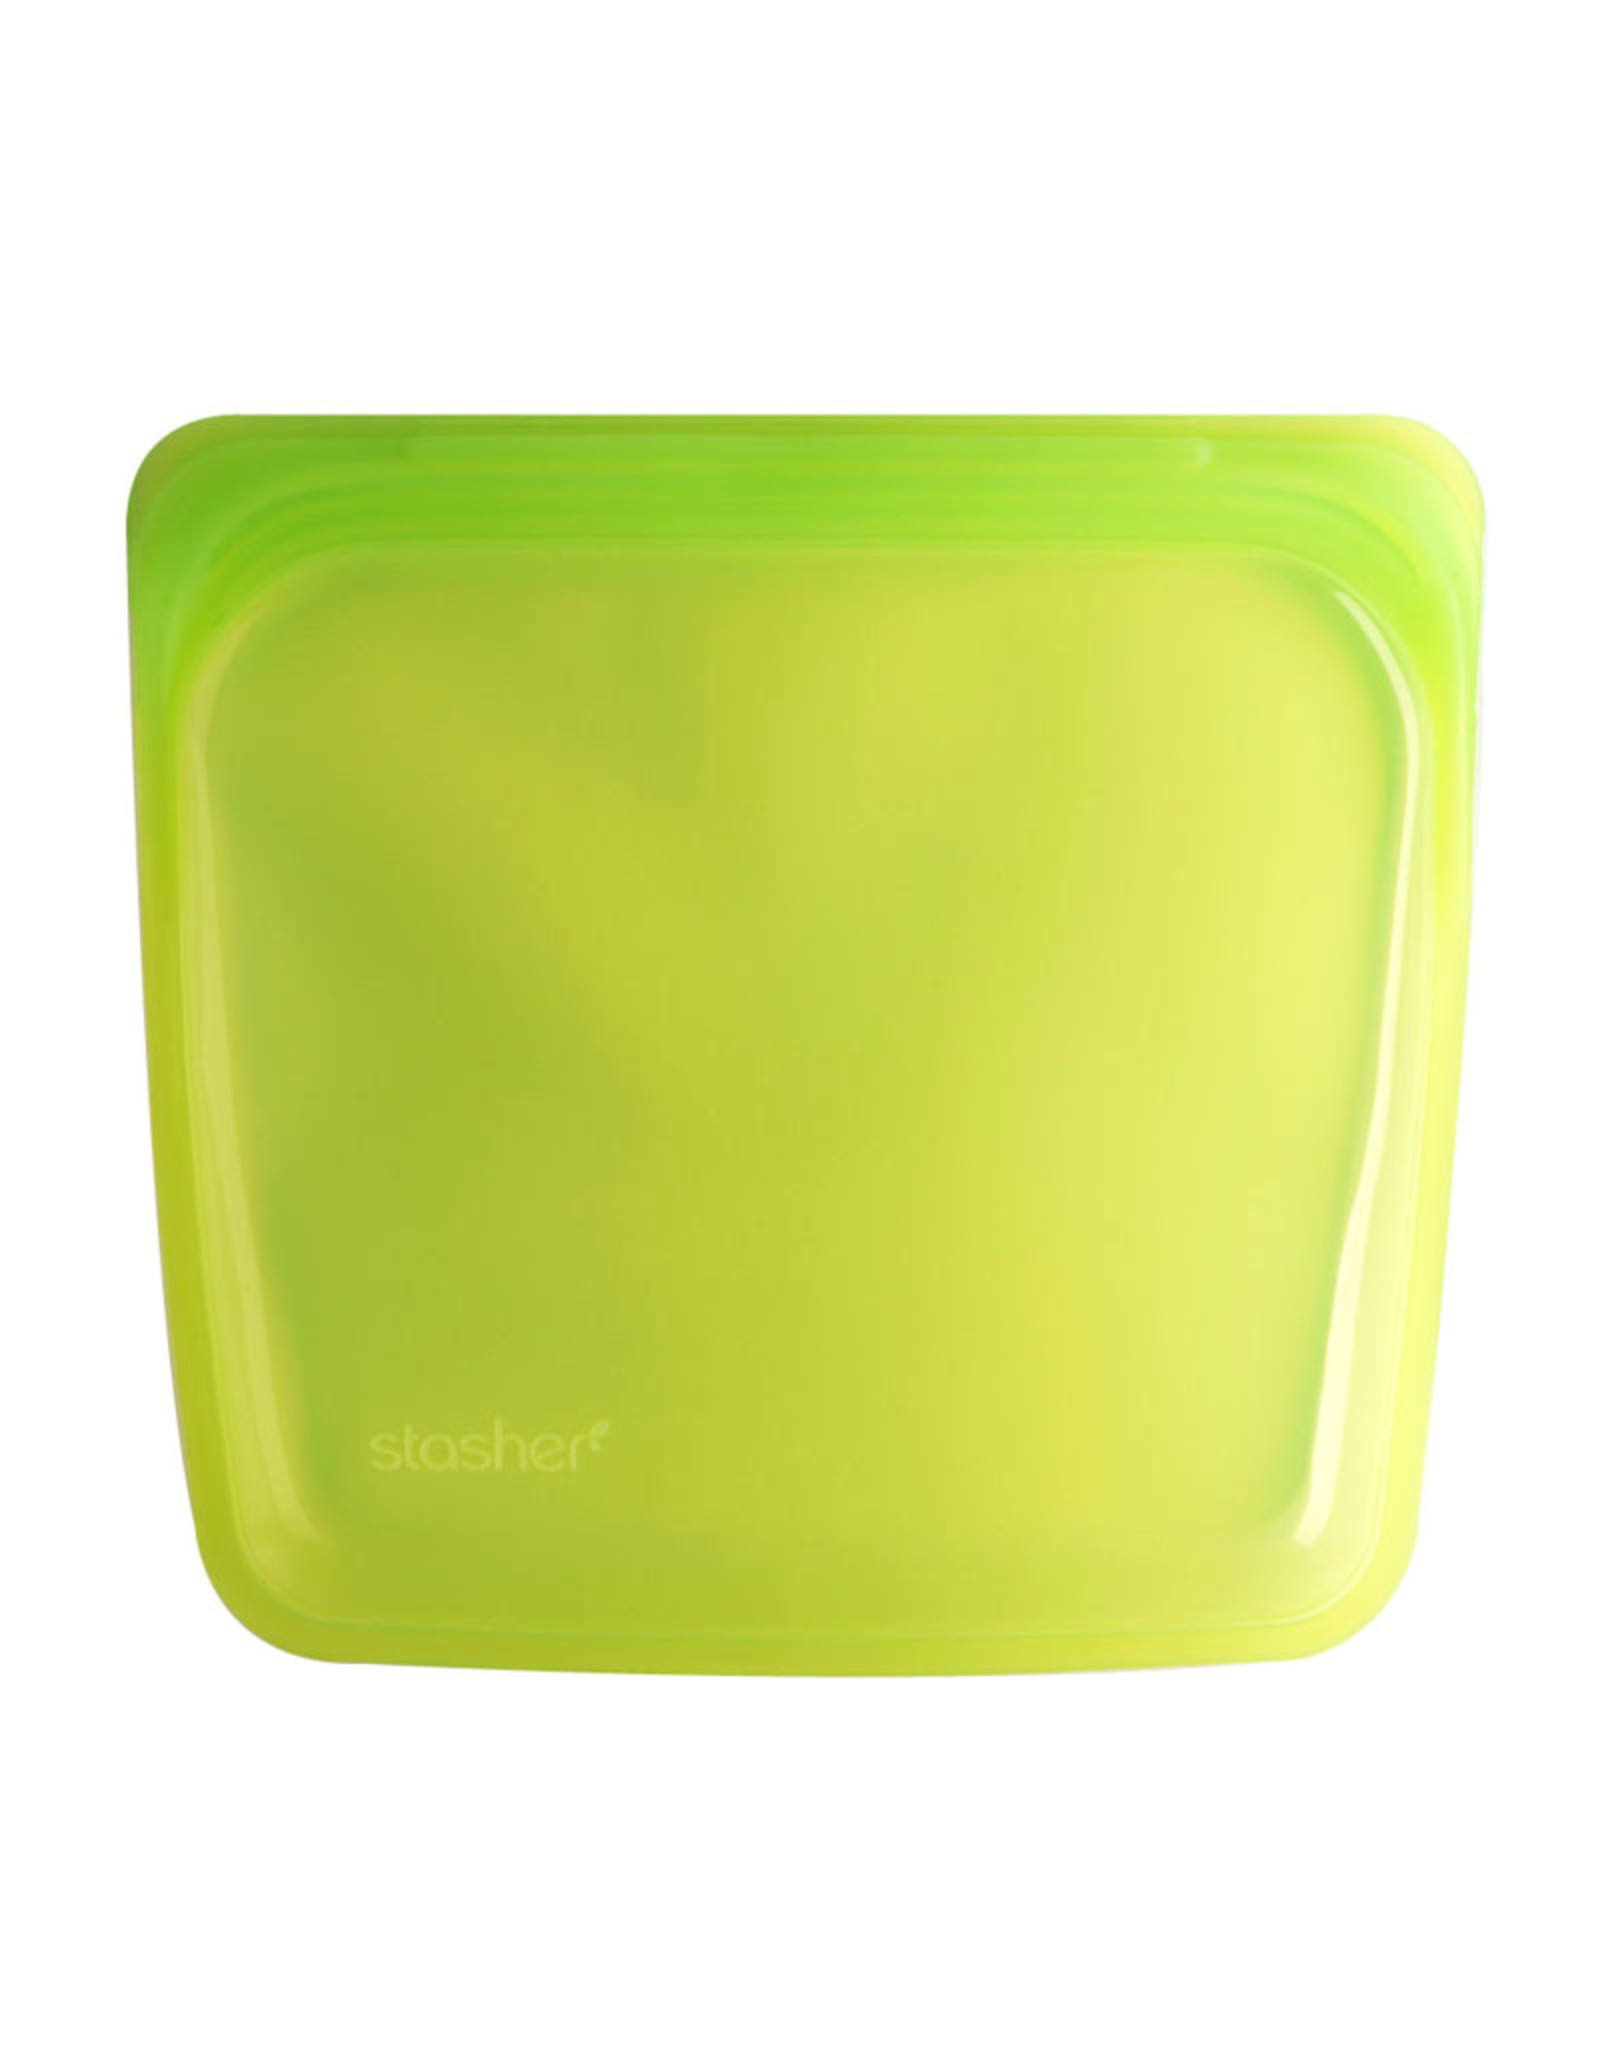 Stasher Reusable Storage/Sandwich Bag